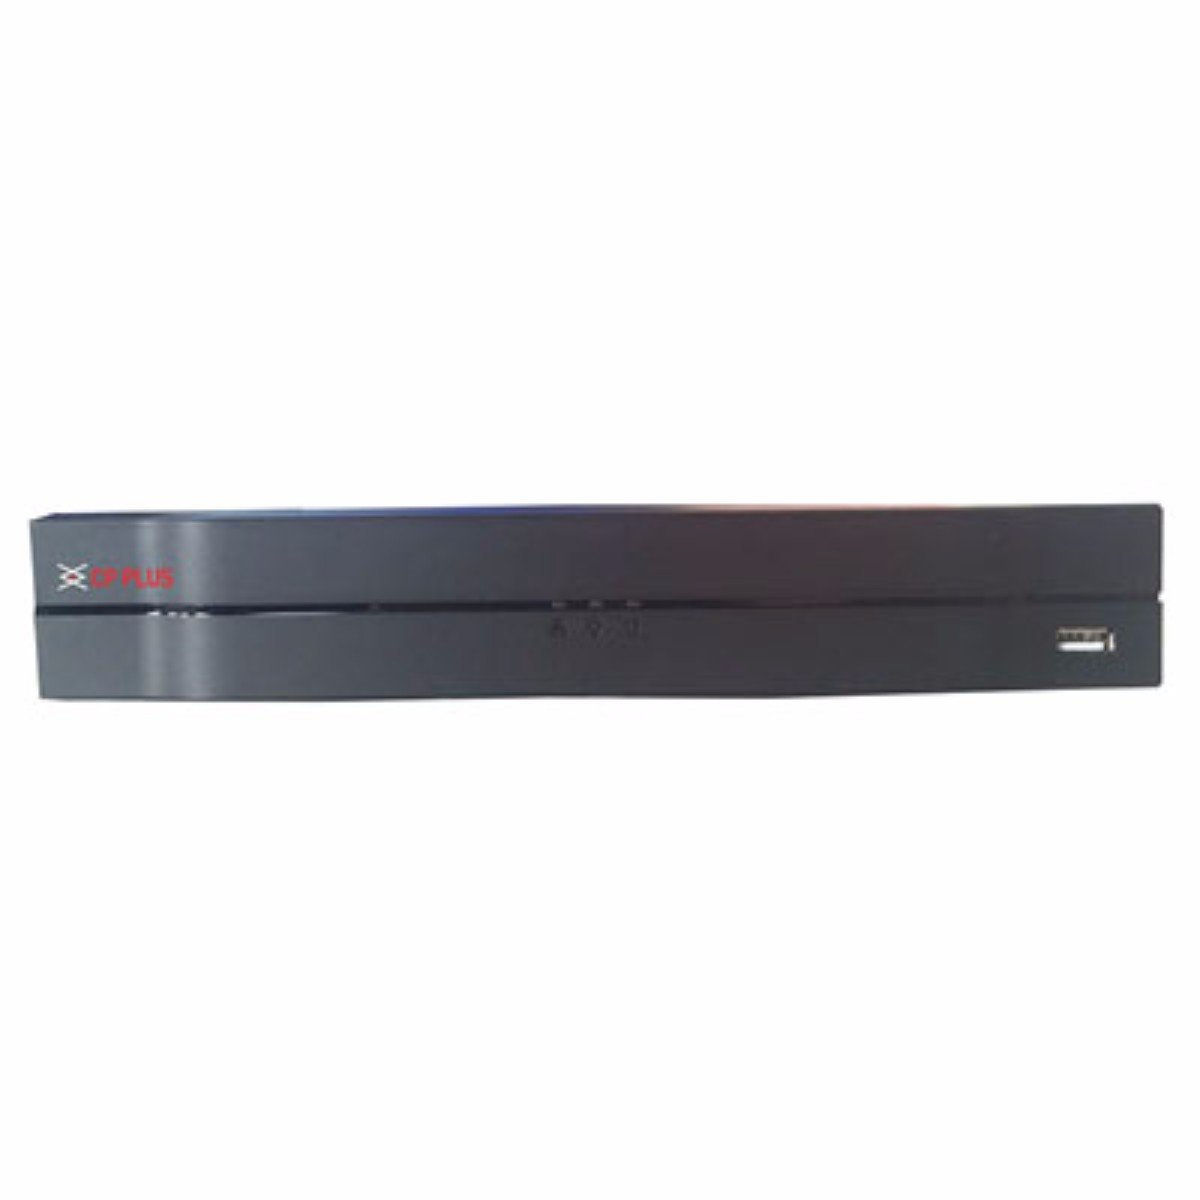 CP Plus CP-UVR-0801K1-S (without Harddisk) 8 Ch. 1 SATA DVR (Black)  Be the first to review this item